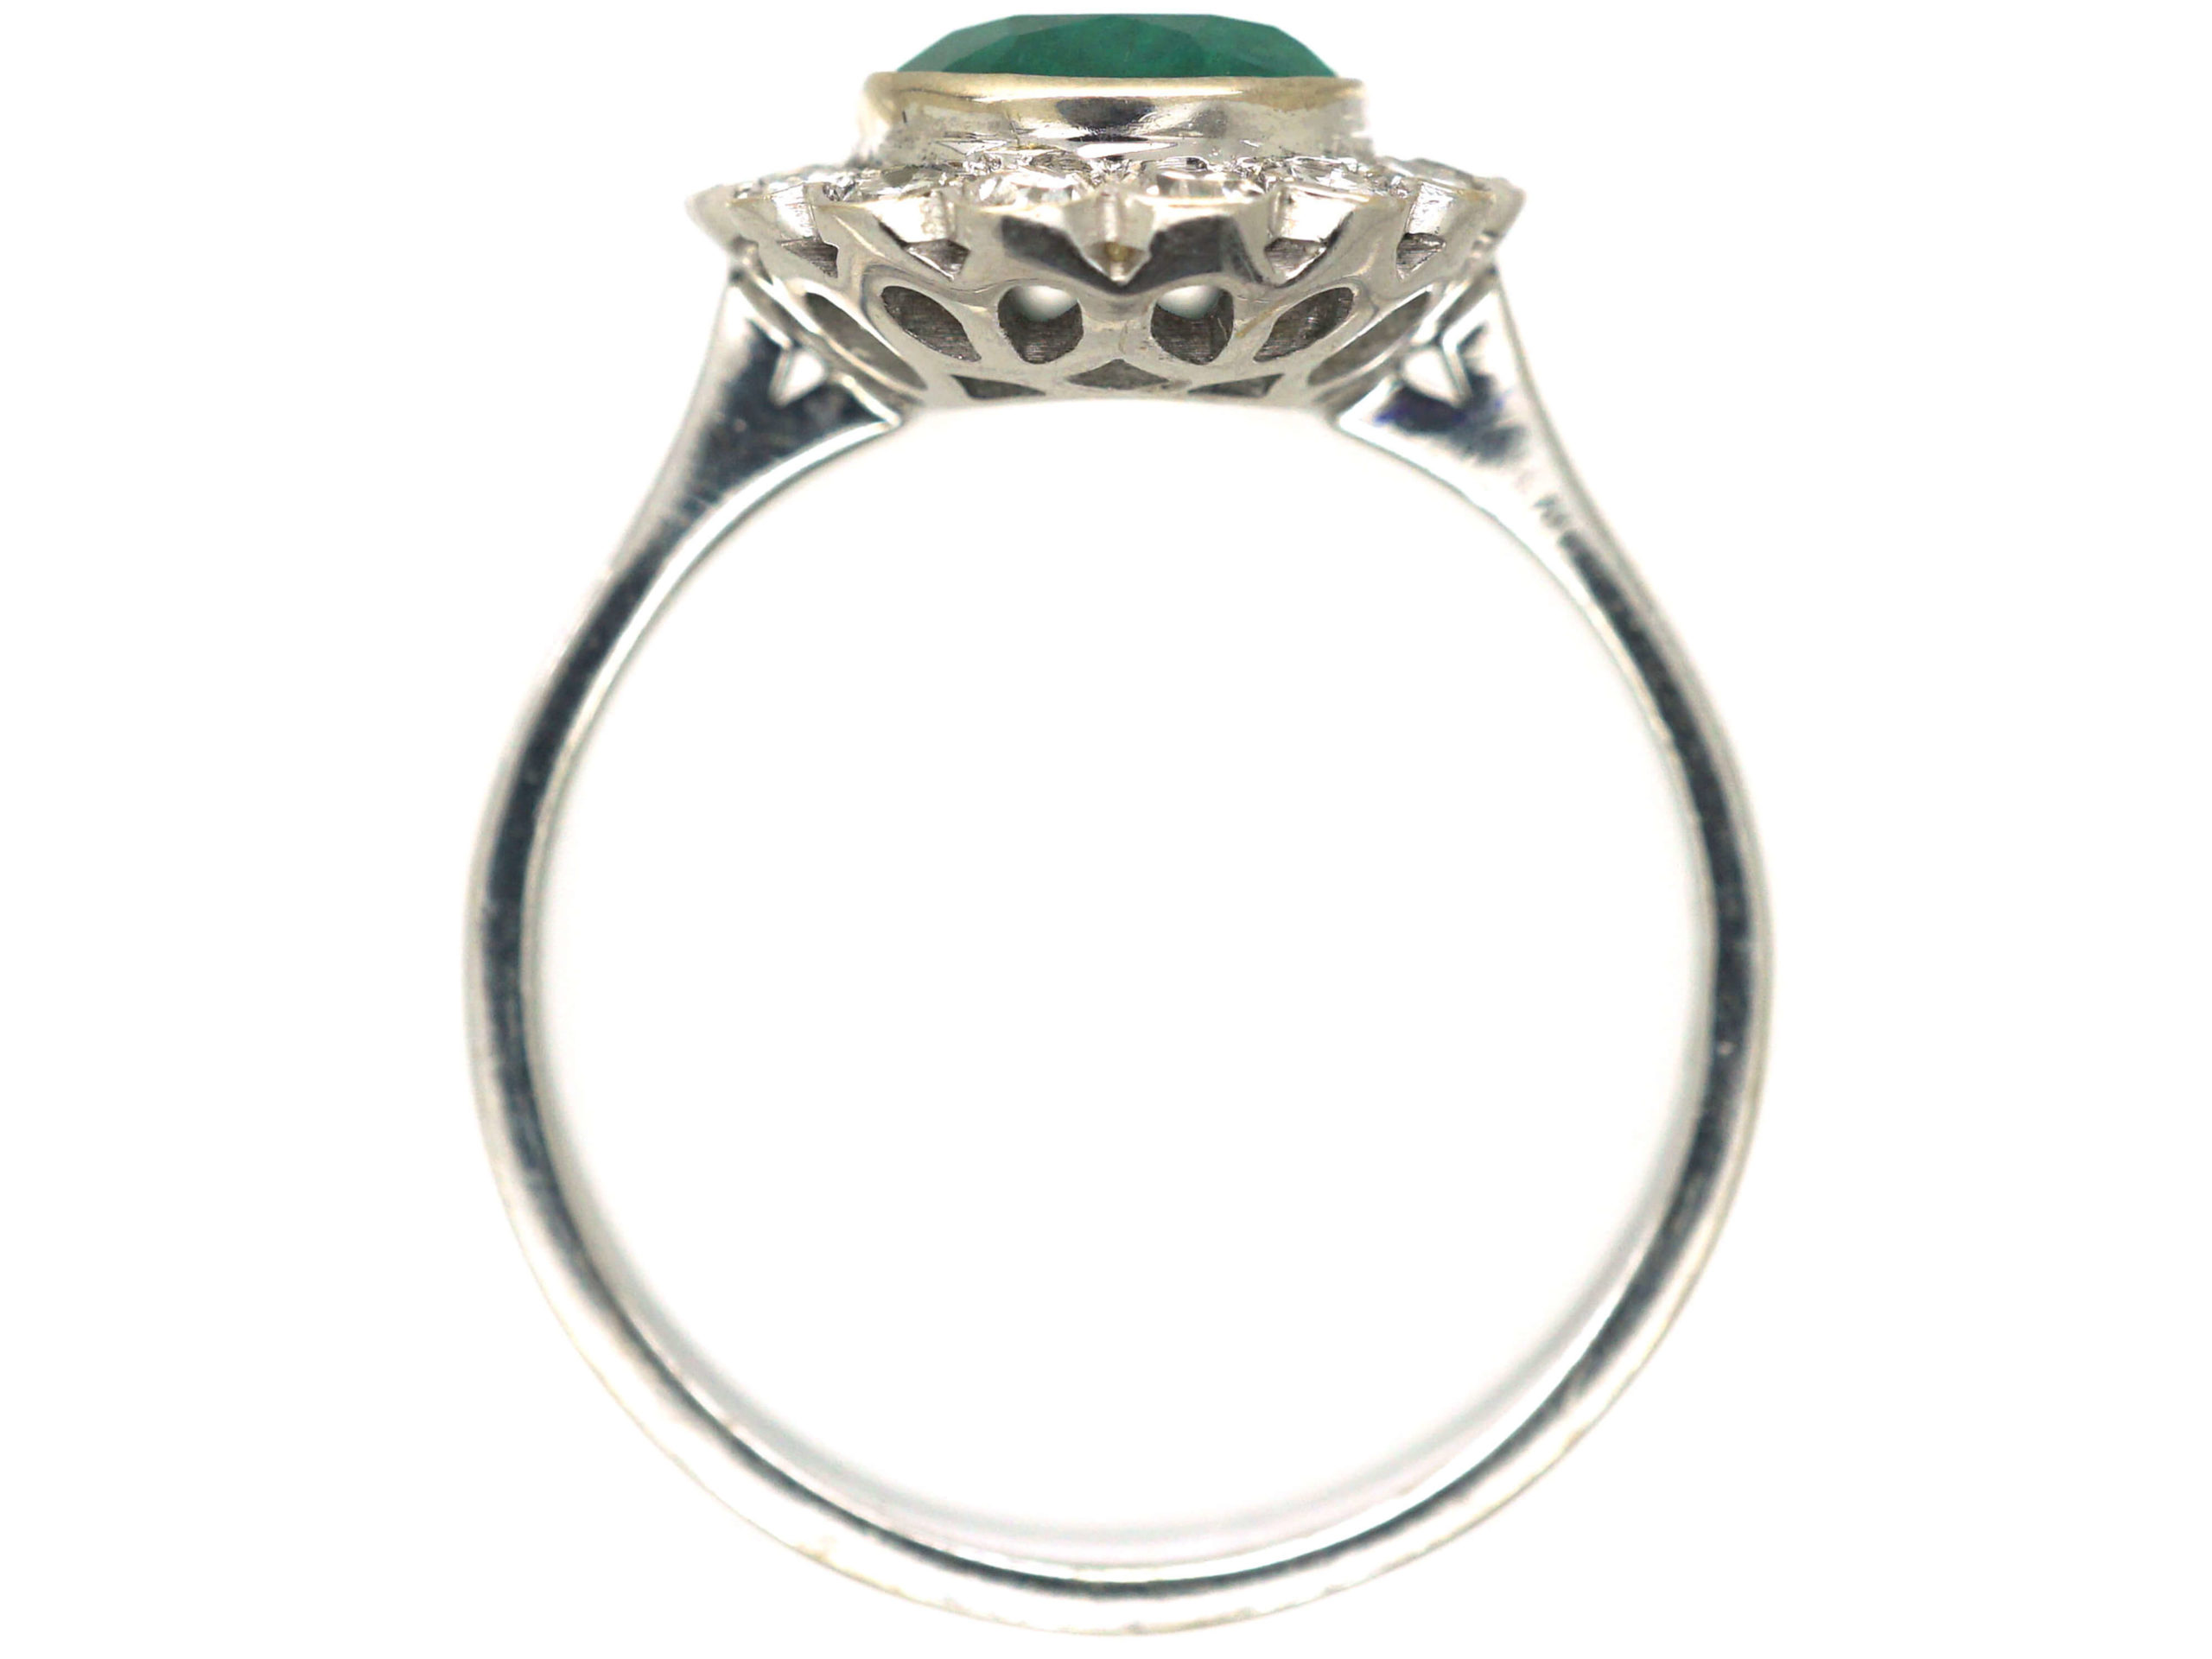 18ct White Gold Emerald & Diamond Oval Shaped Ring